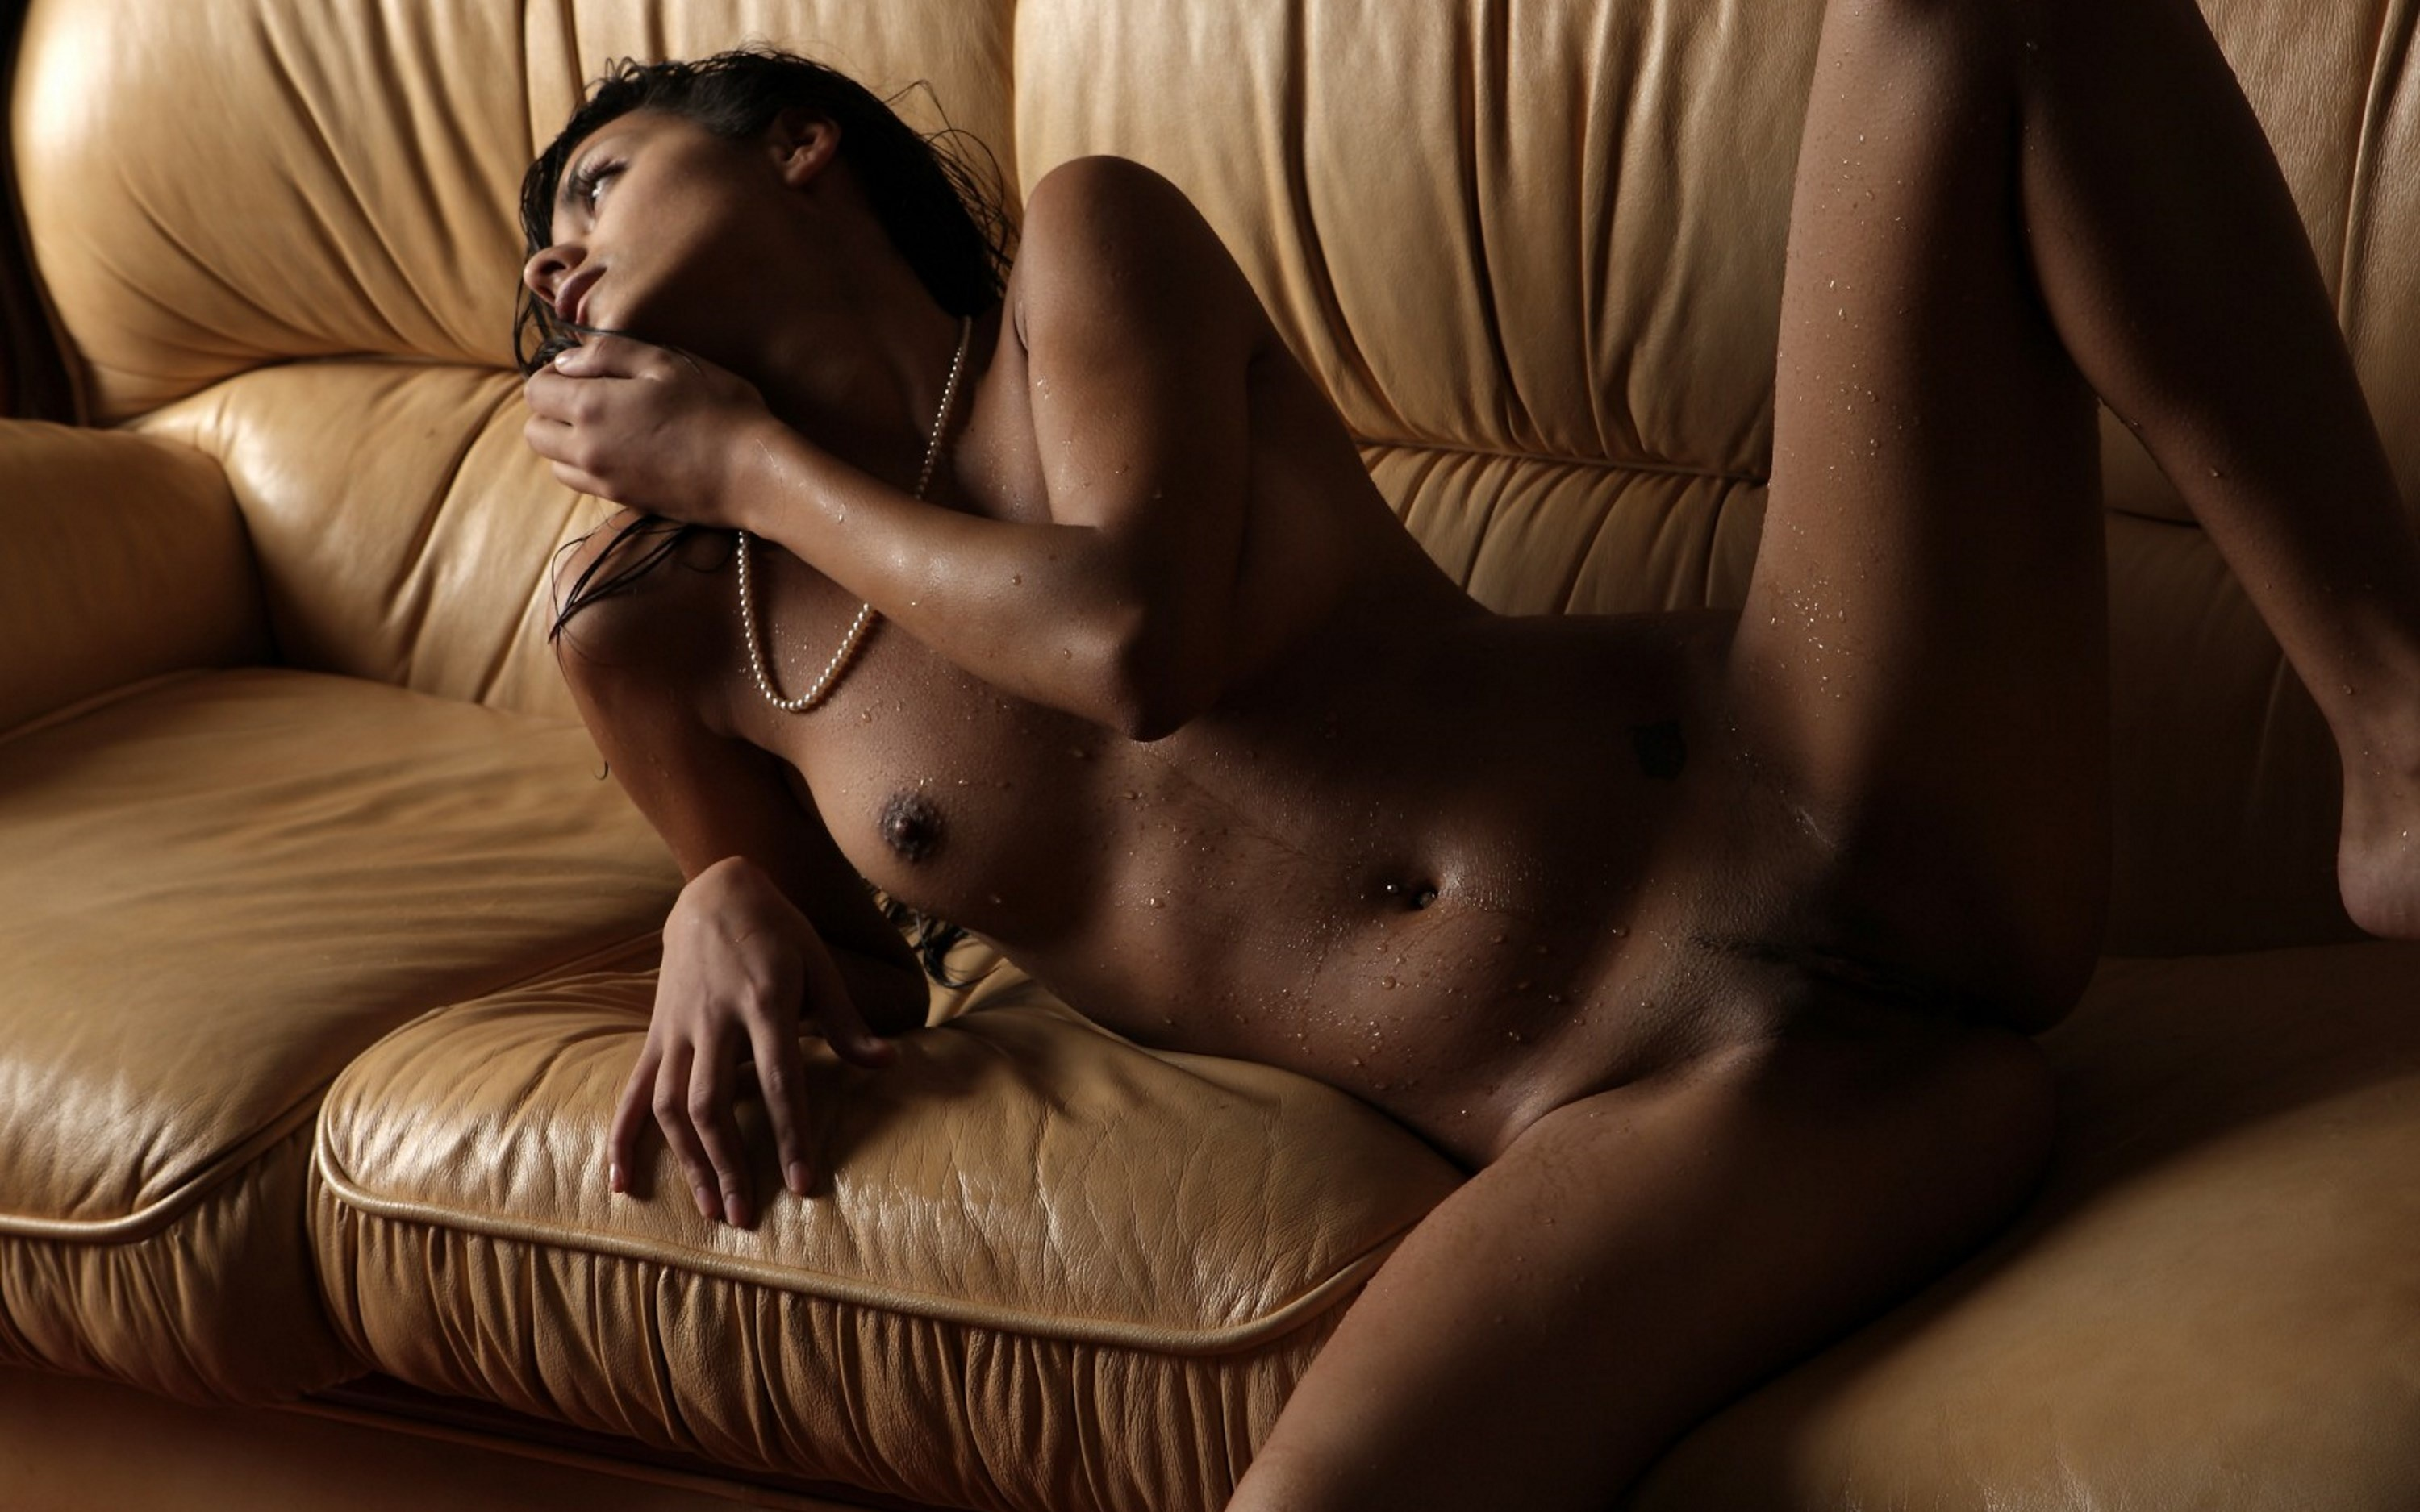 Chubby brunette women nude Hairy porn pictures